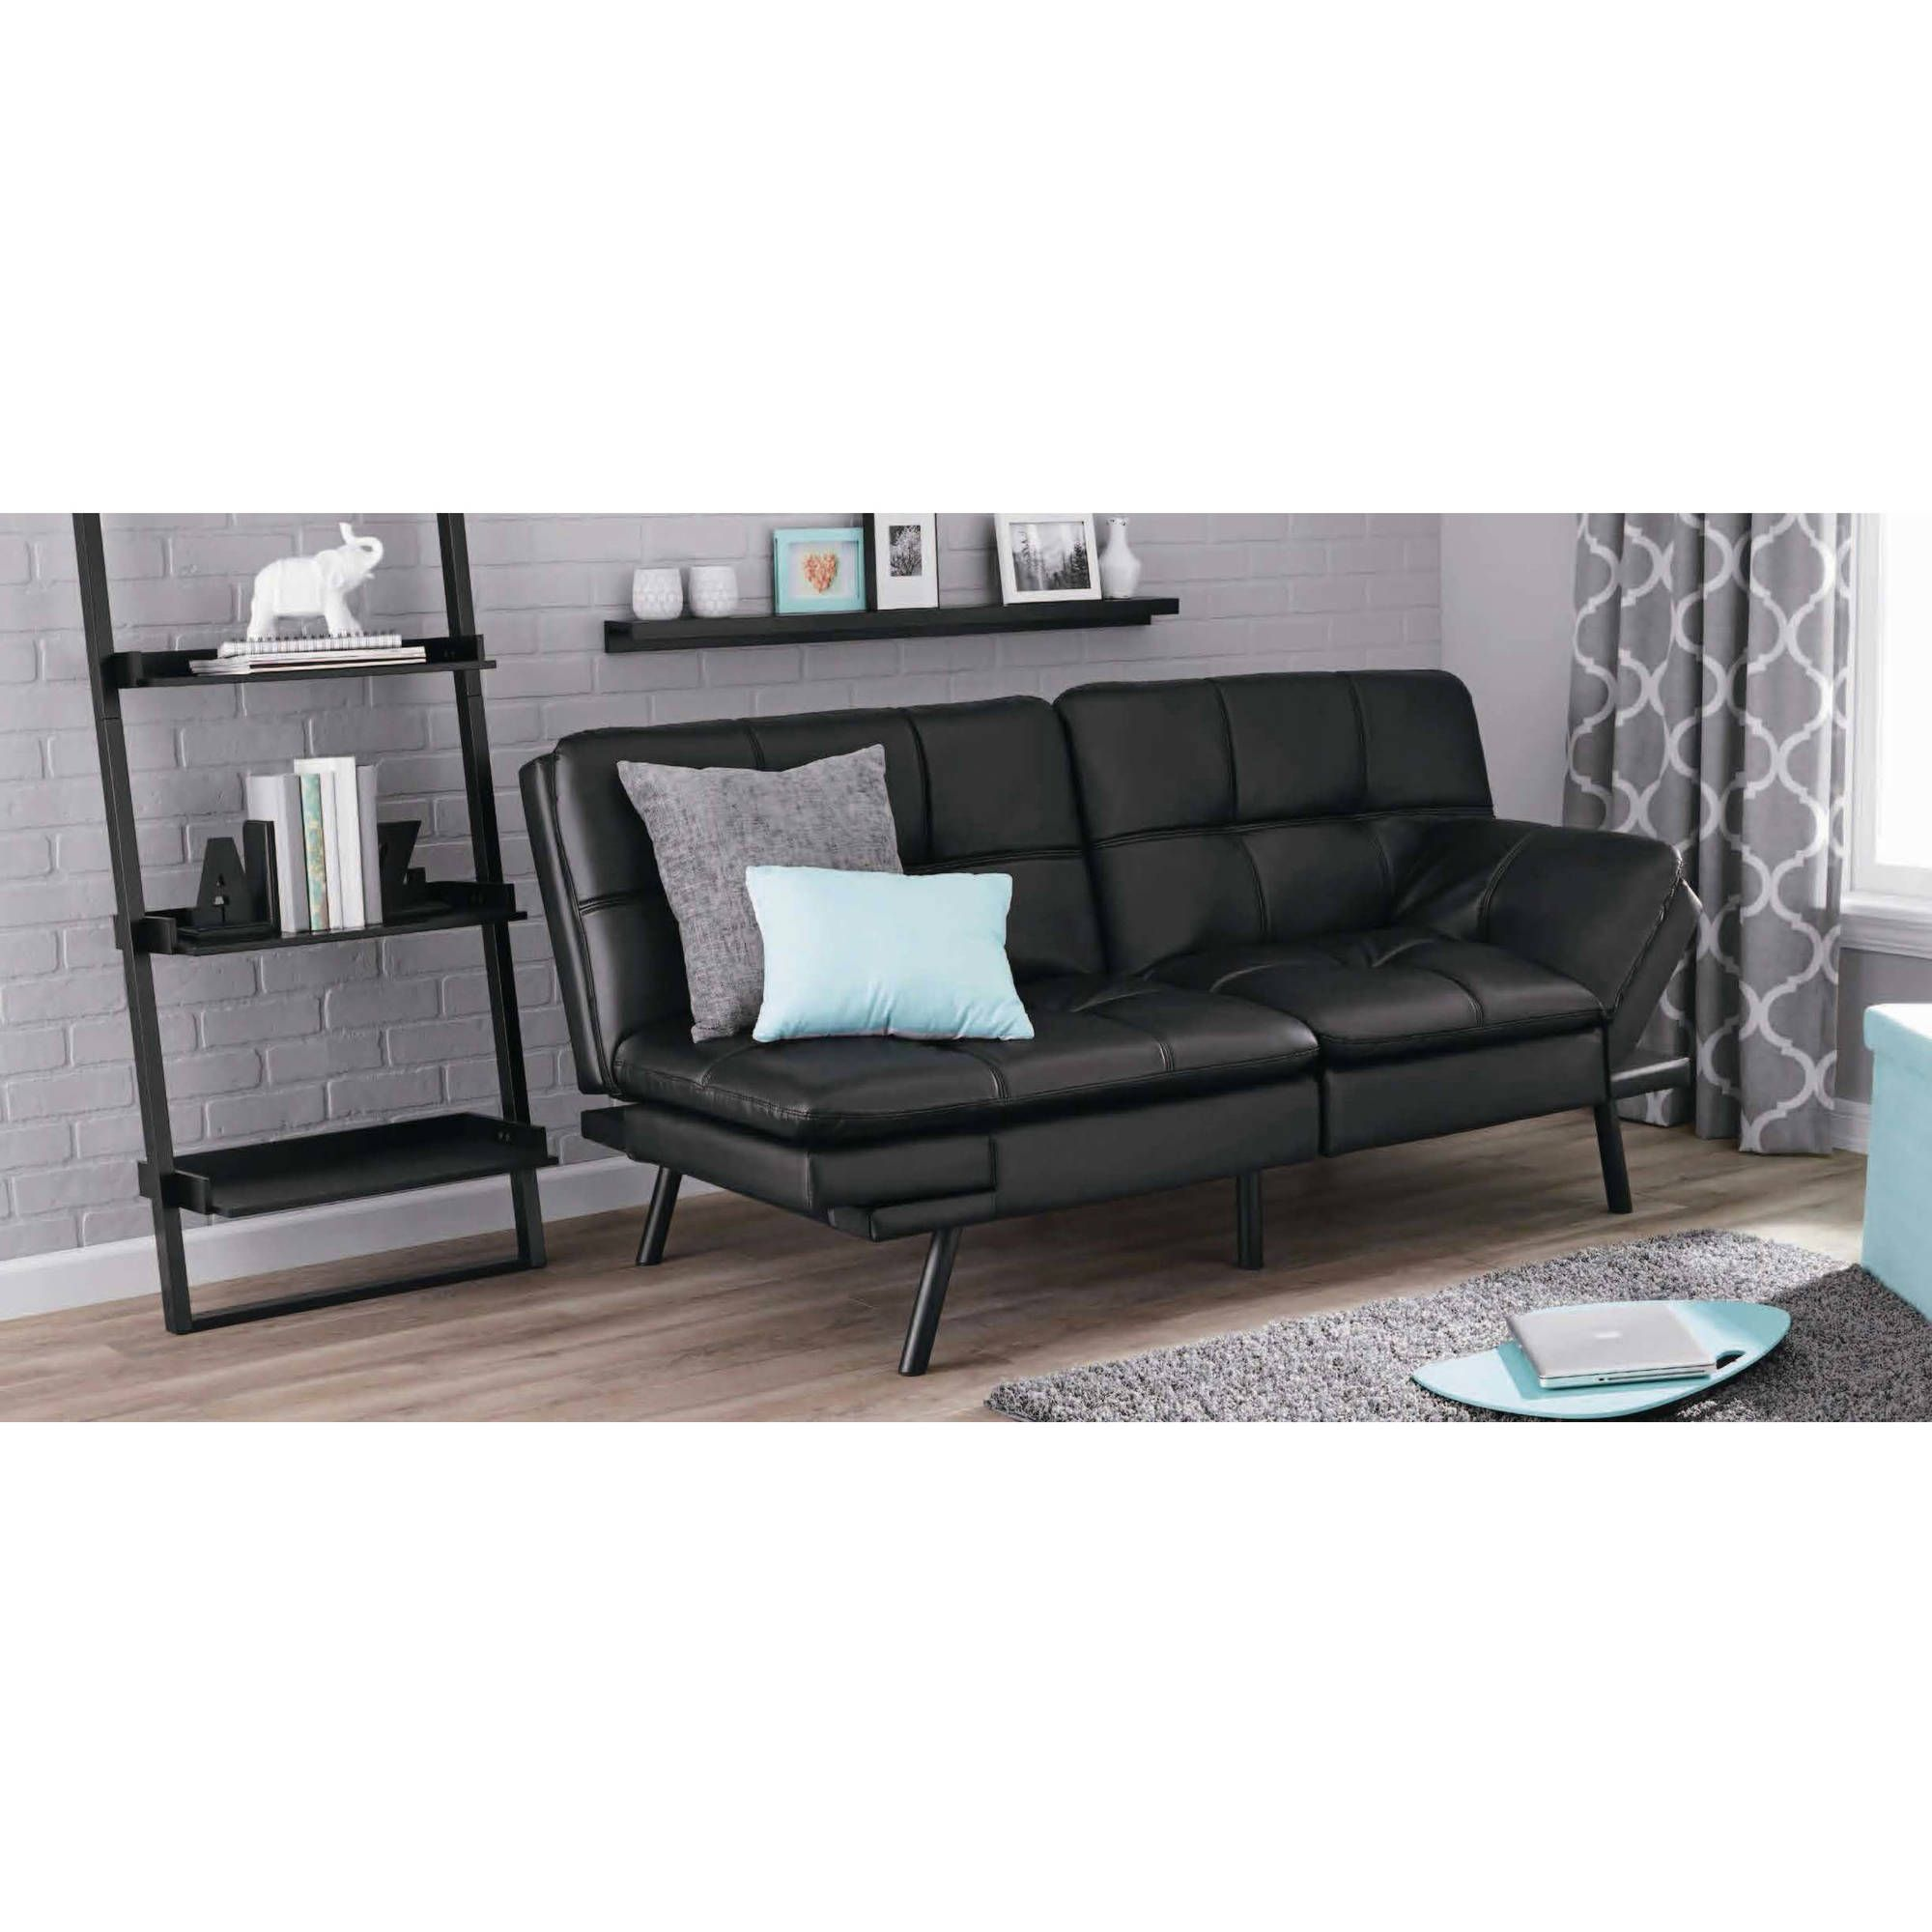 Mainstays Memory Foam Futon Multiple Colors Walmart Com